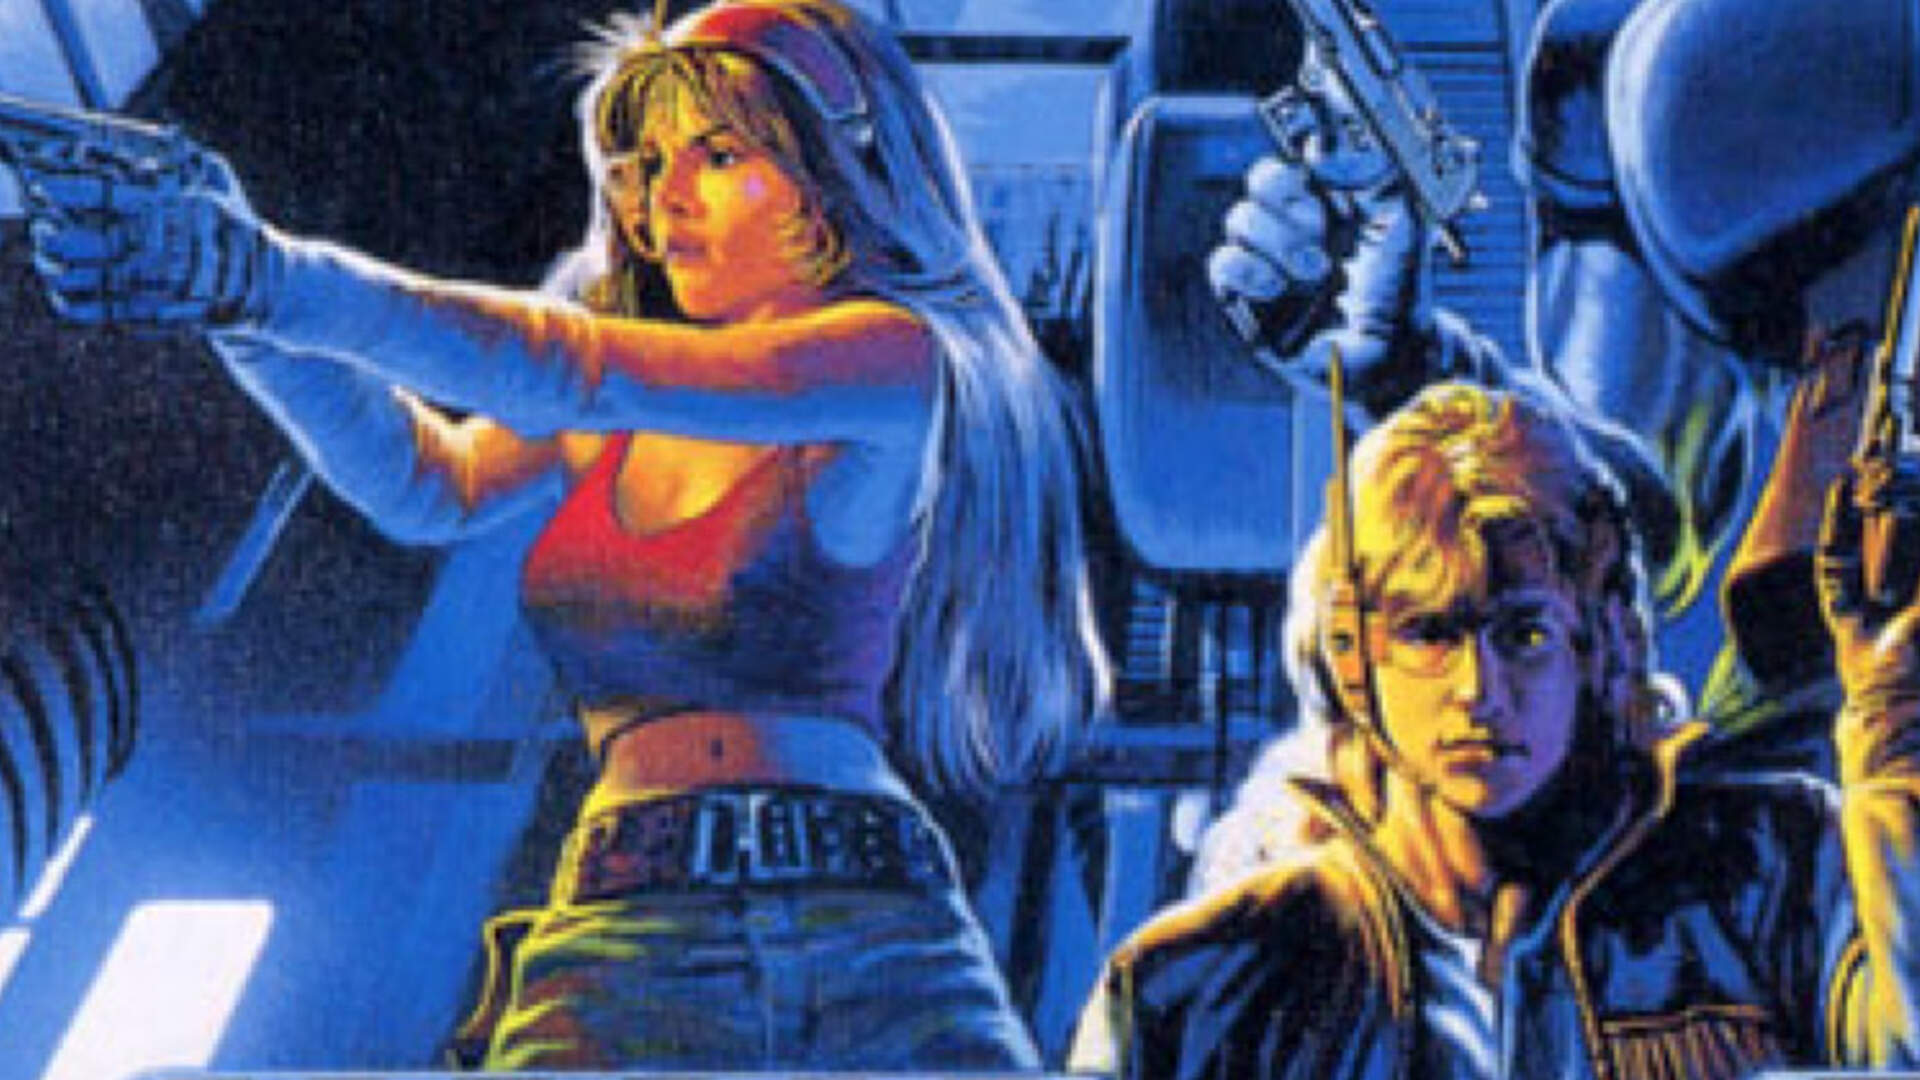 Daily Classic: Elevator Action II, An Arcade Oddity Too Beautiful for This Miserable World